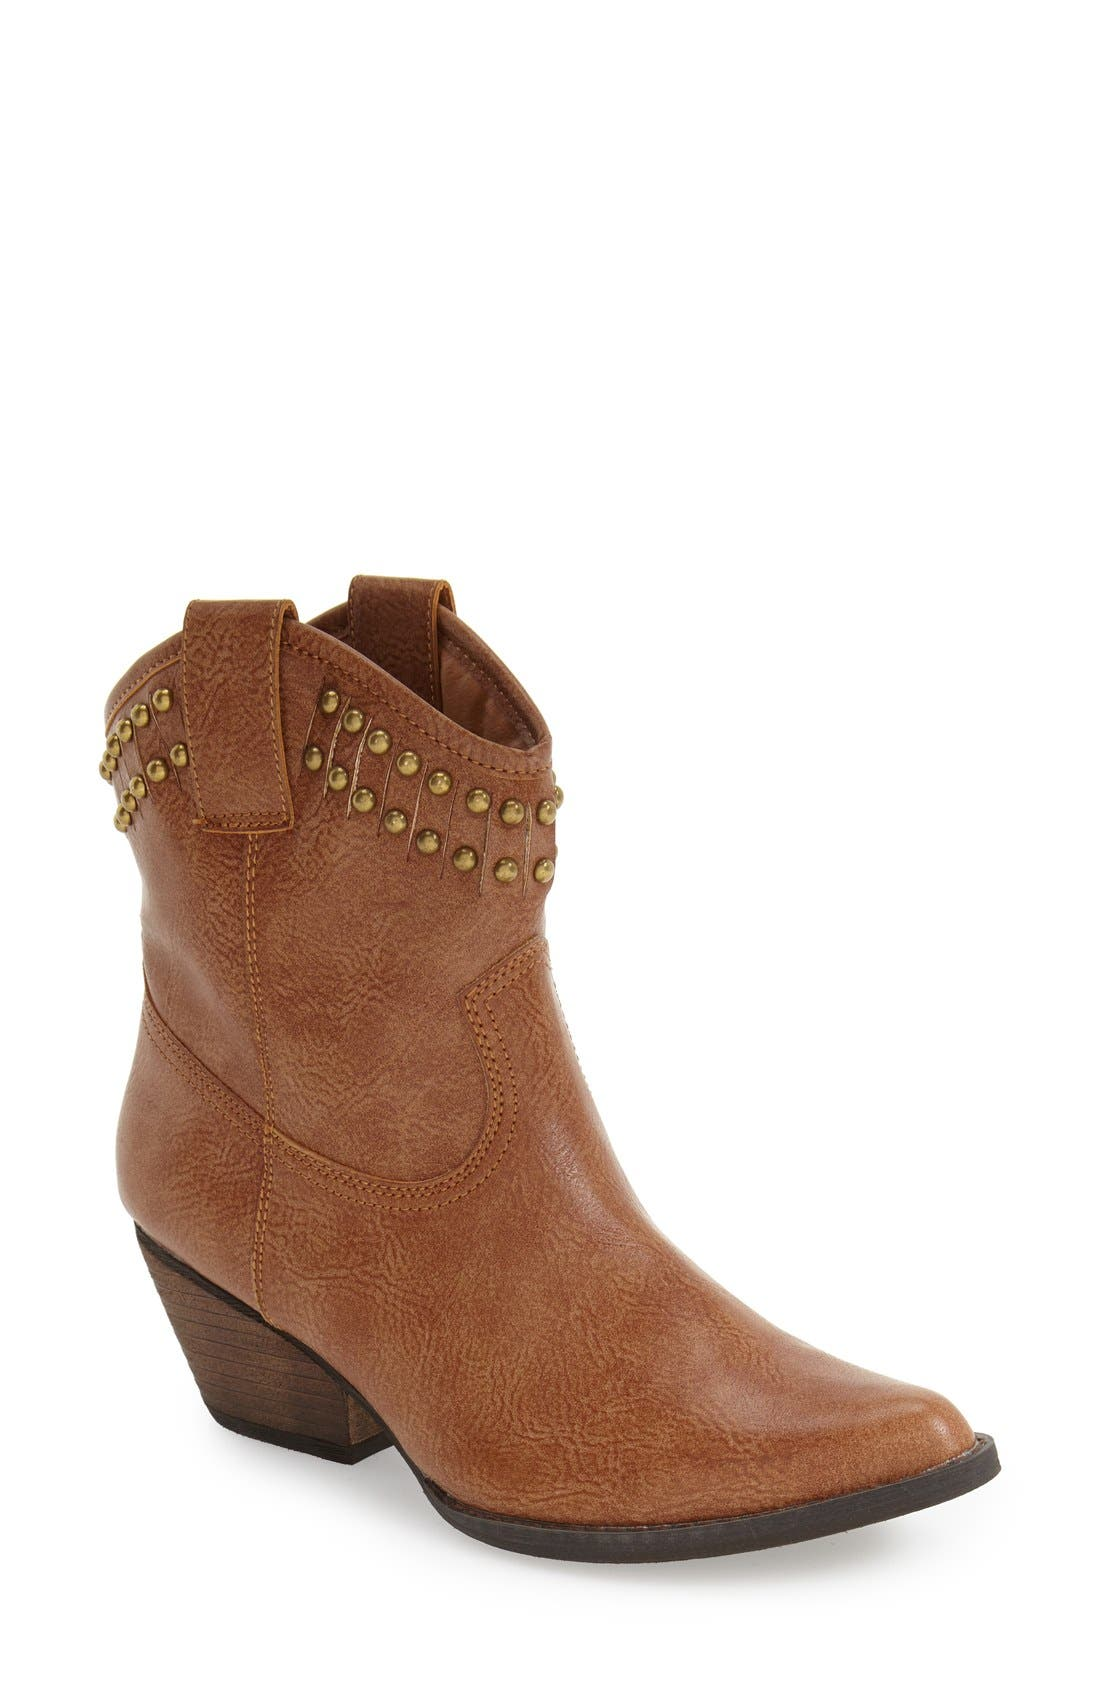 Alternate Image 1 Selected - Very Volatile 'Lunet' Studded Western Bootie (Women)